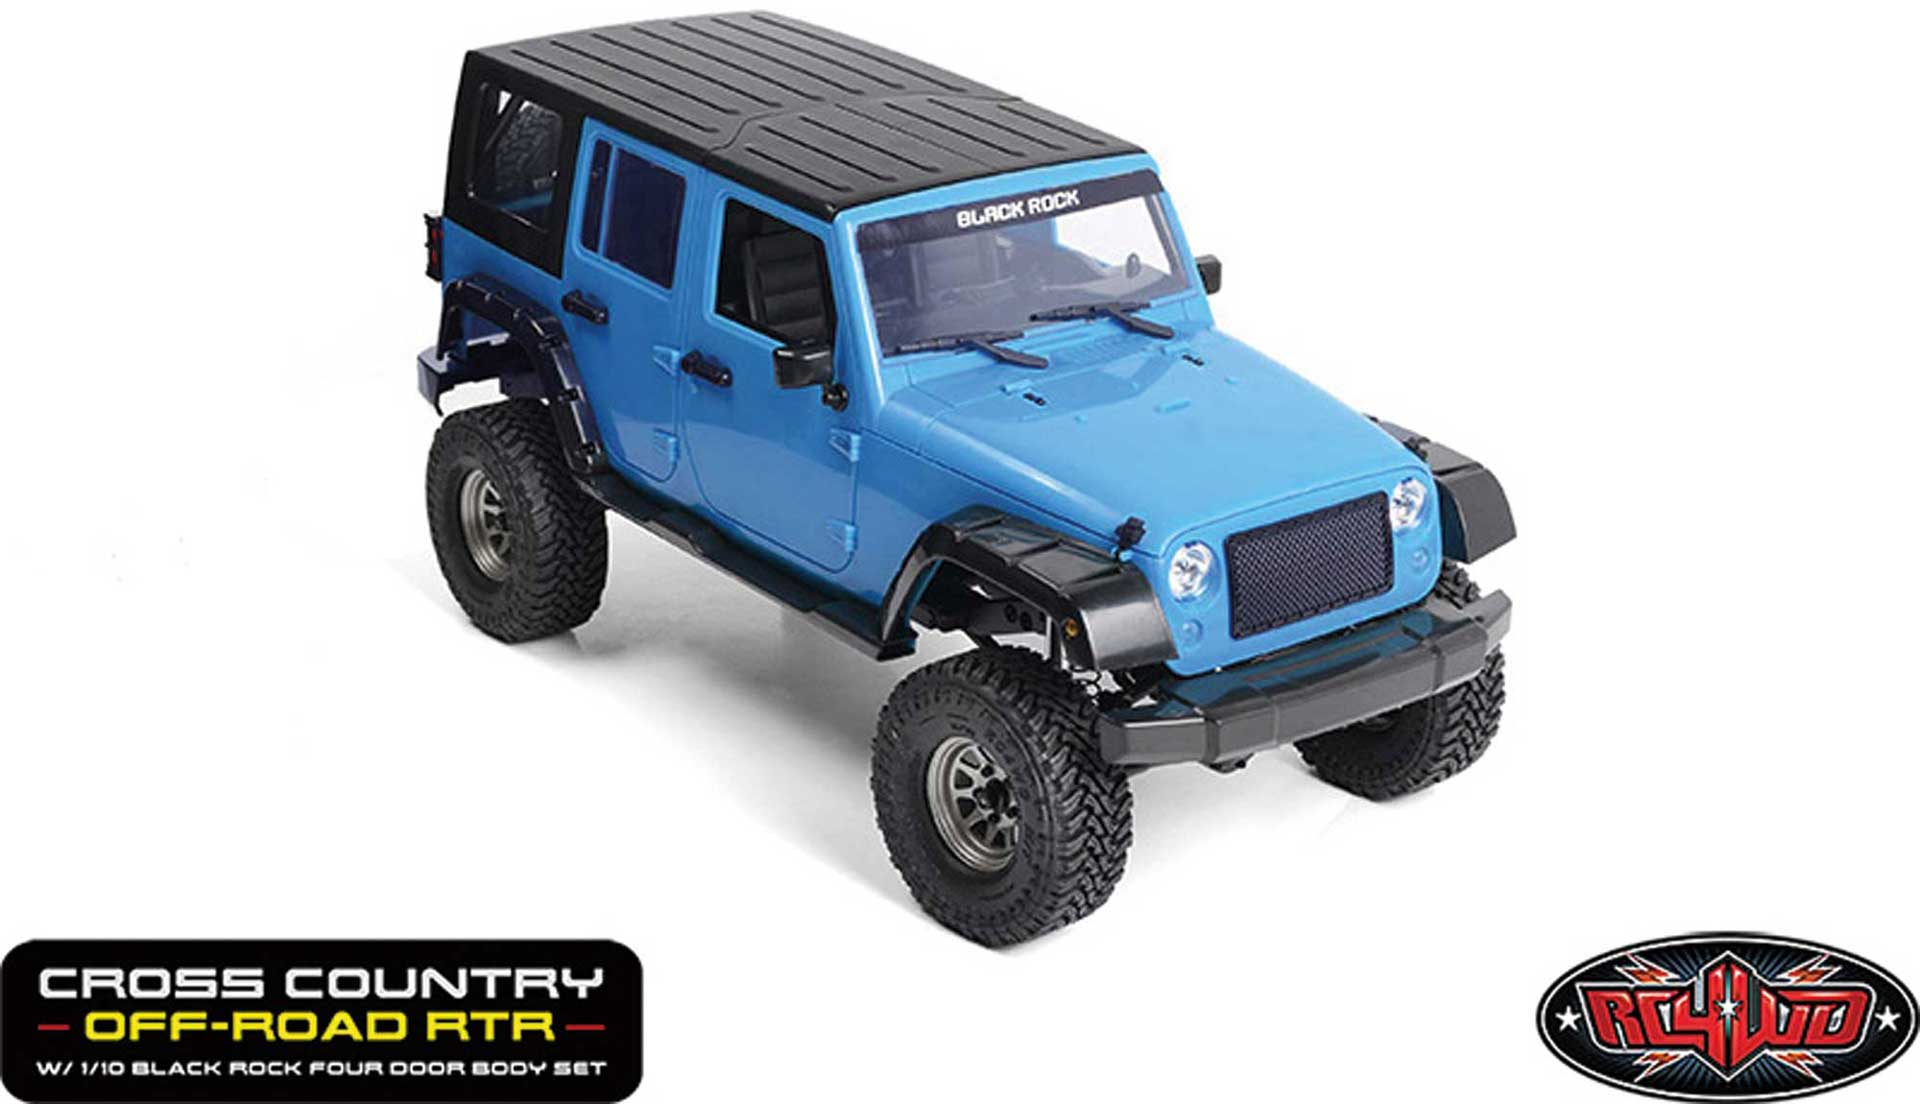 RC4WD Cross Country Off-Road Crawler RTR 1/10 incl. Black-Rock Four-door Model Body